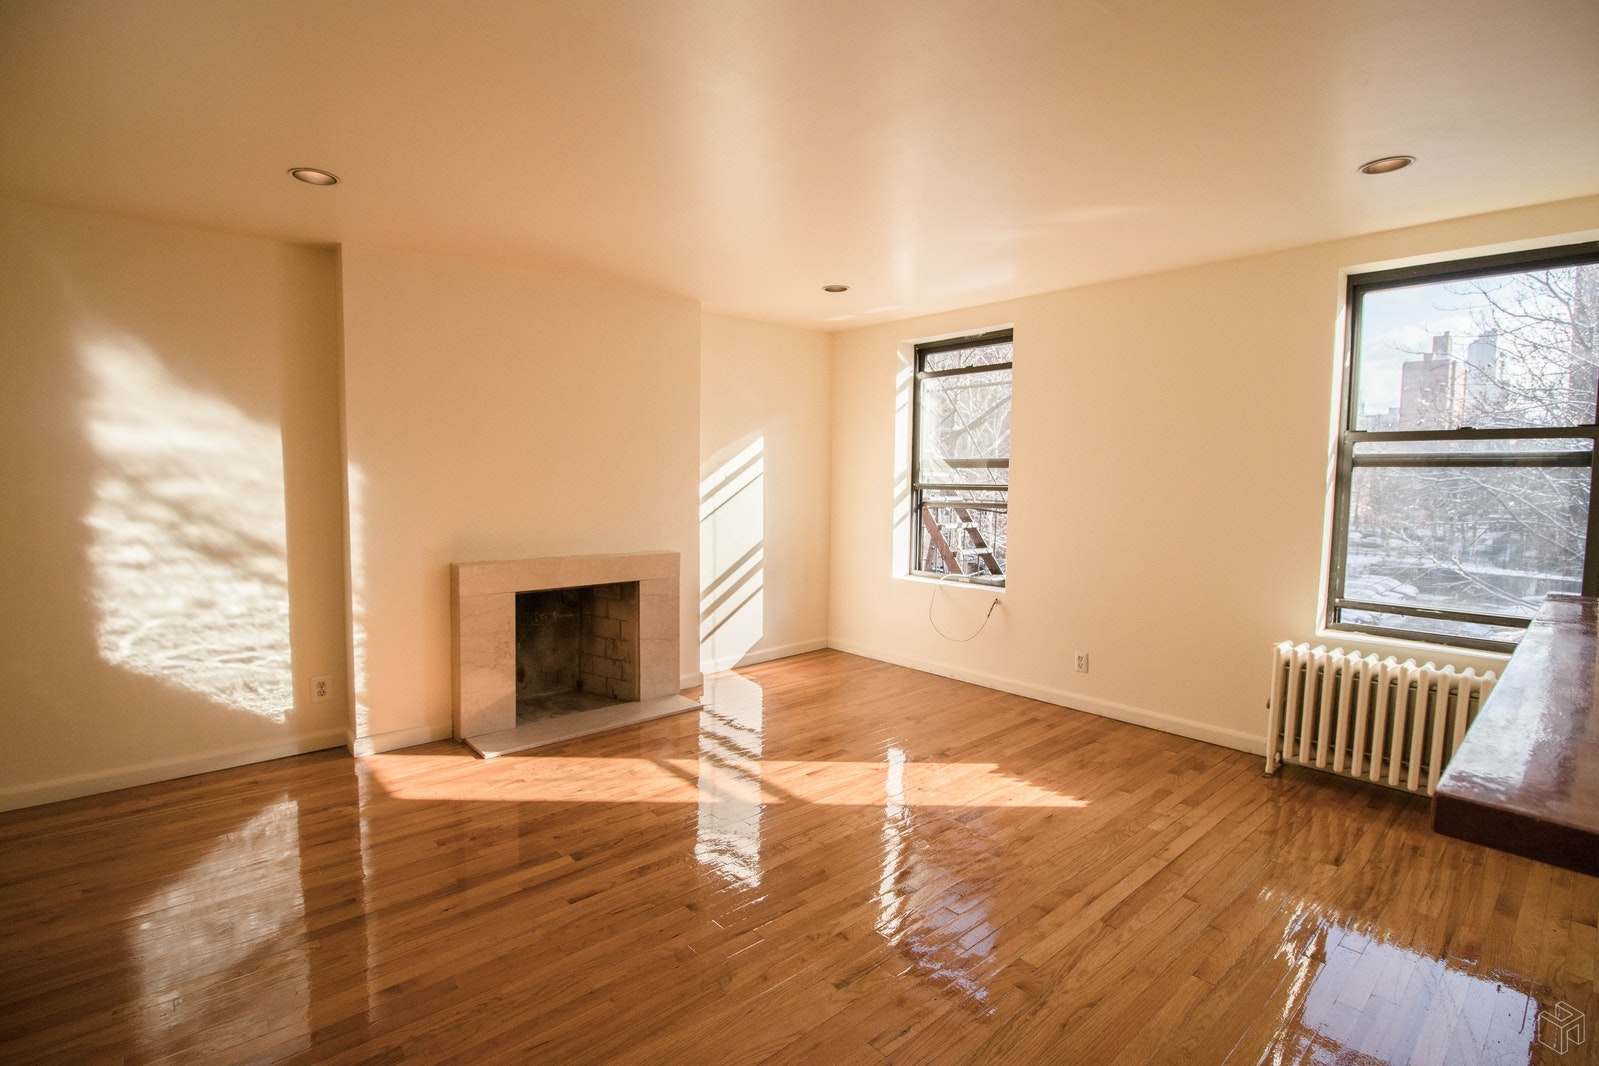 437 East 6th Street, East Village, NYC, 10009, Price Not Disclosed, Rented Property, Halstead Real Estate, Photo 1